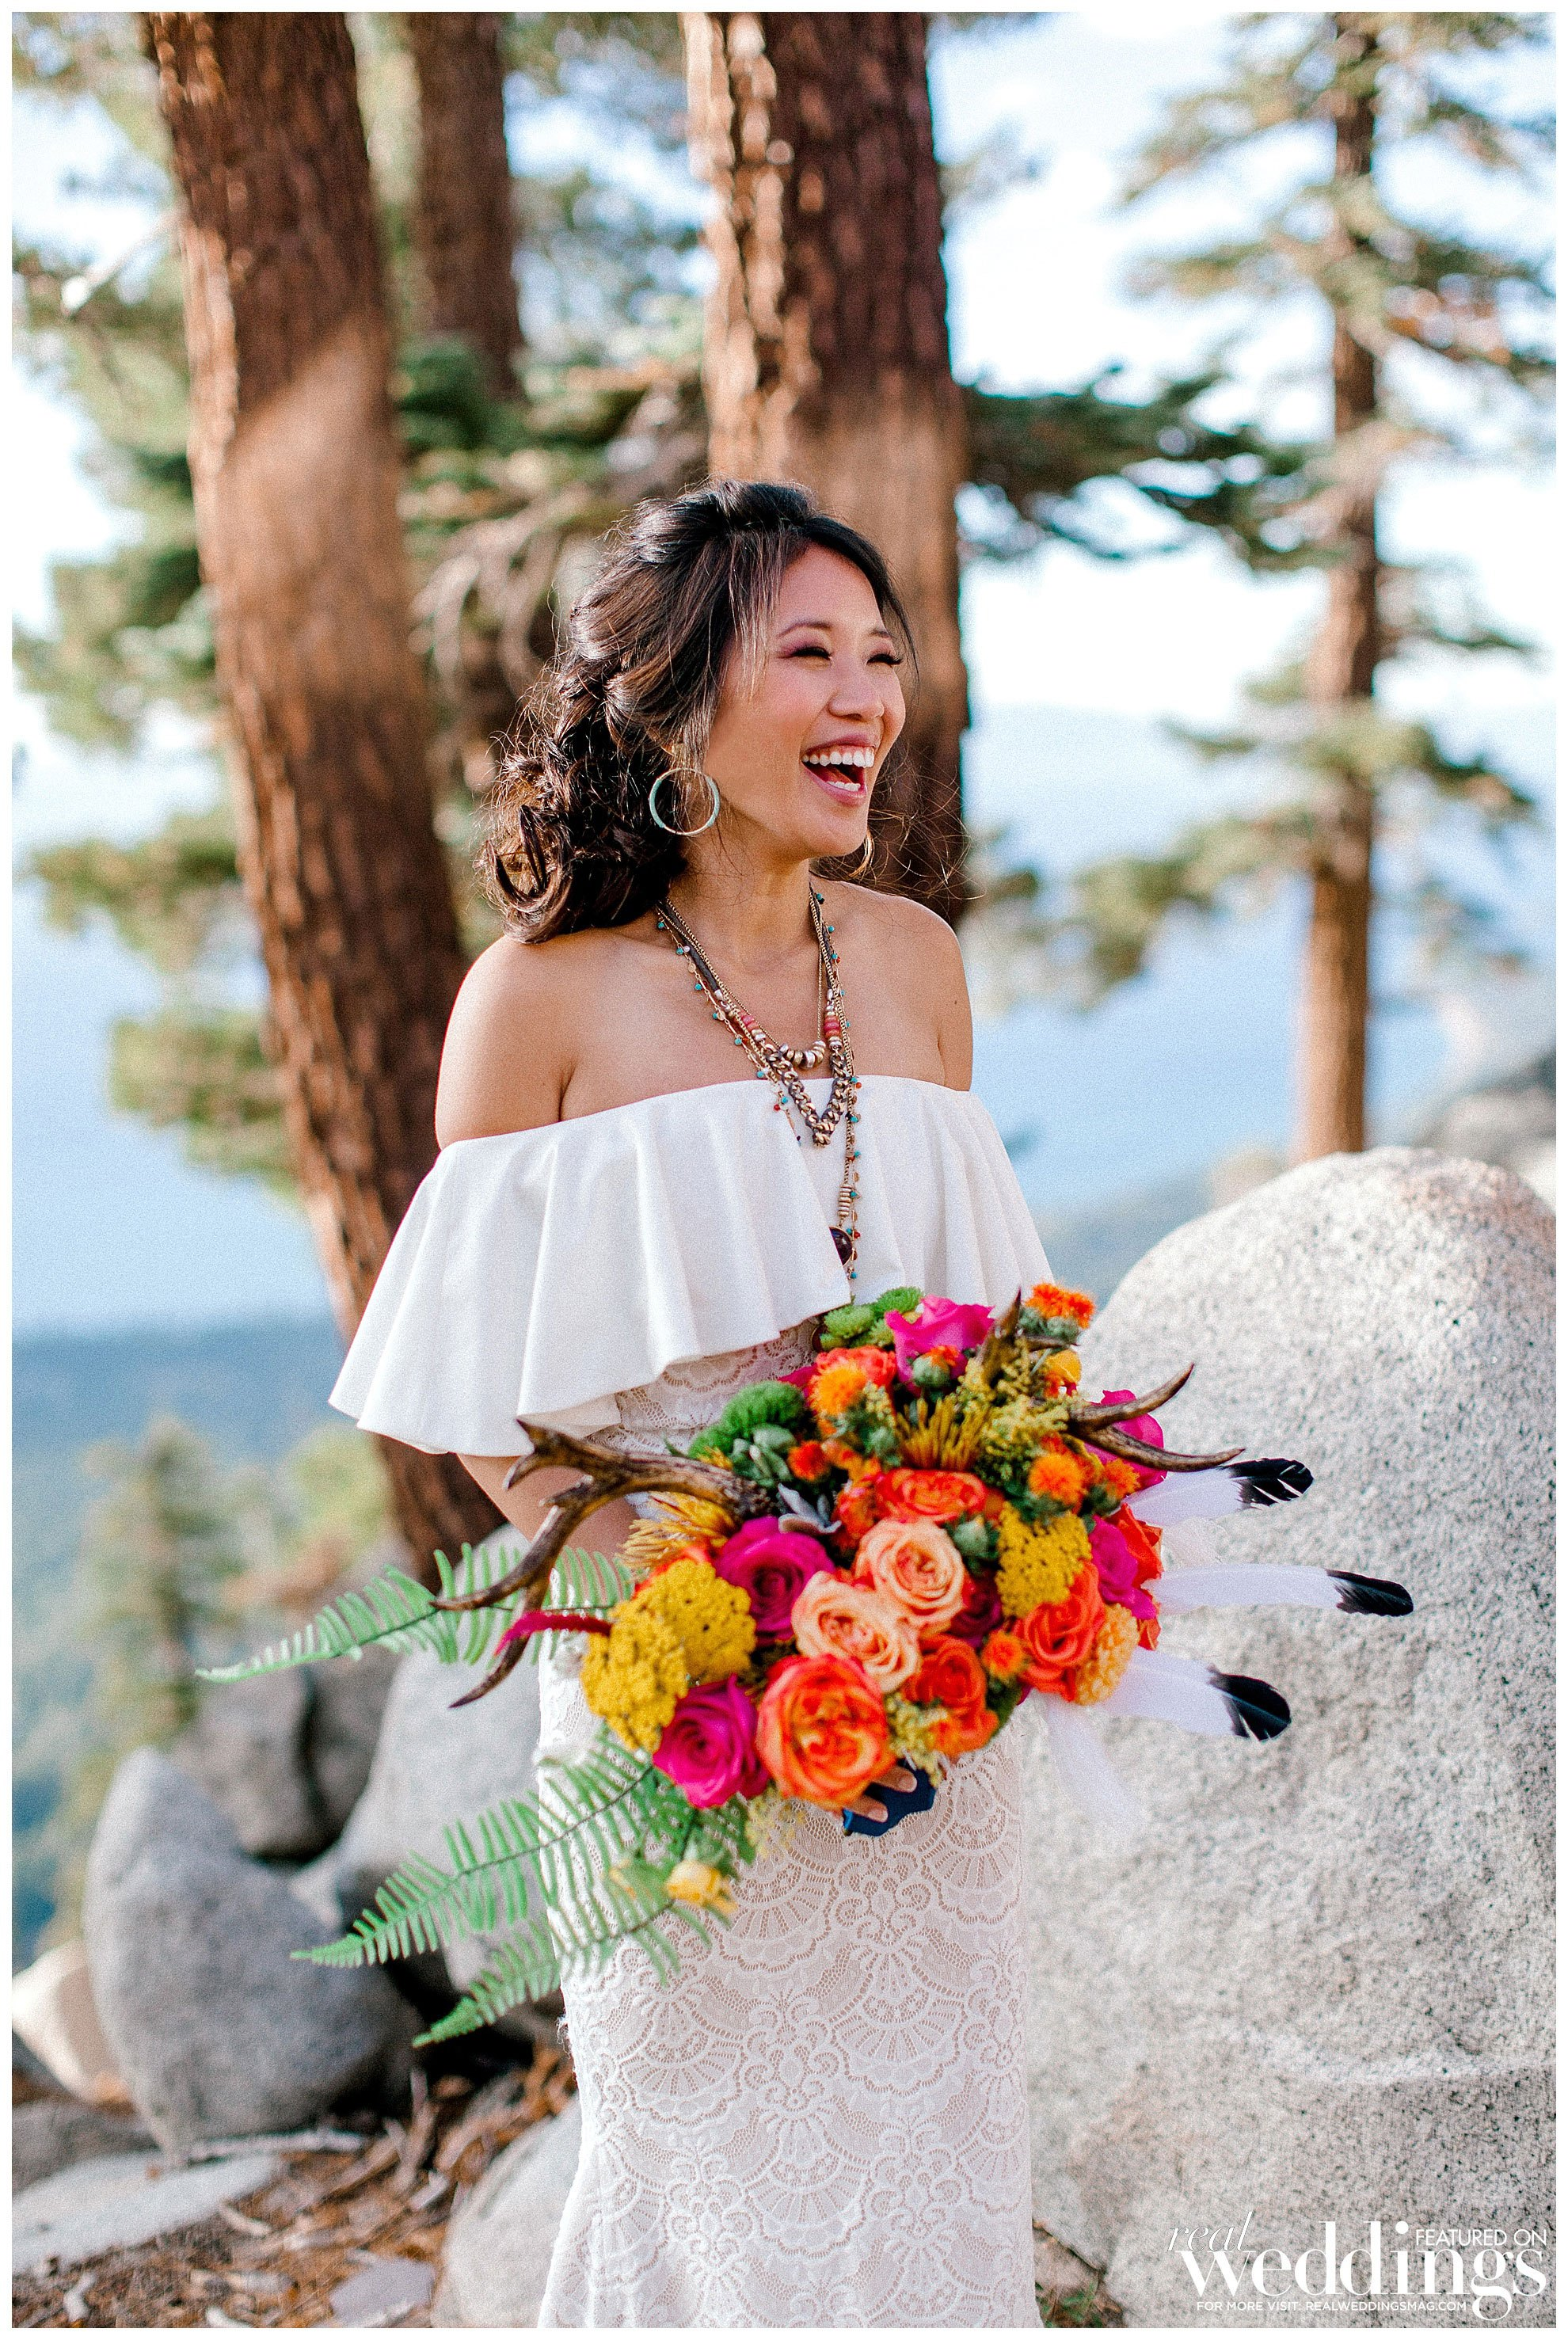 Kathryn-White-Photography-Sacramento-Real-Weddings-Magazine-In-The-Clouds-Layout_0036.jpg